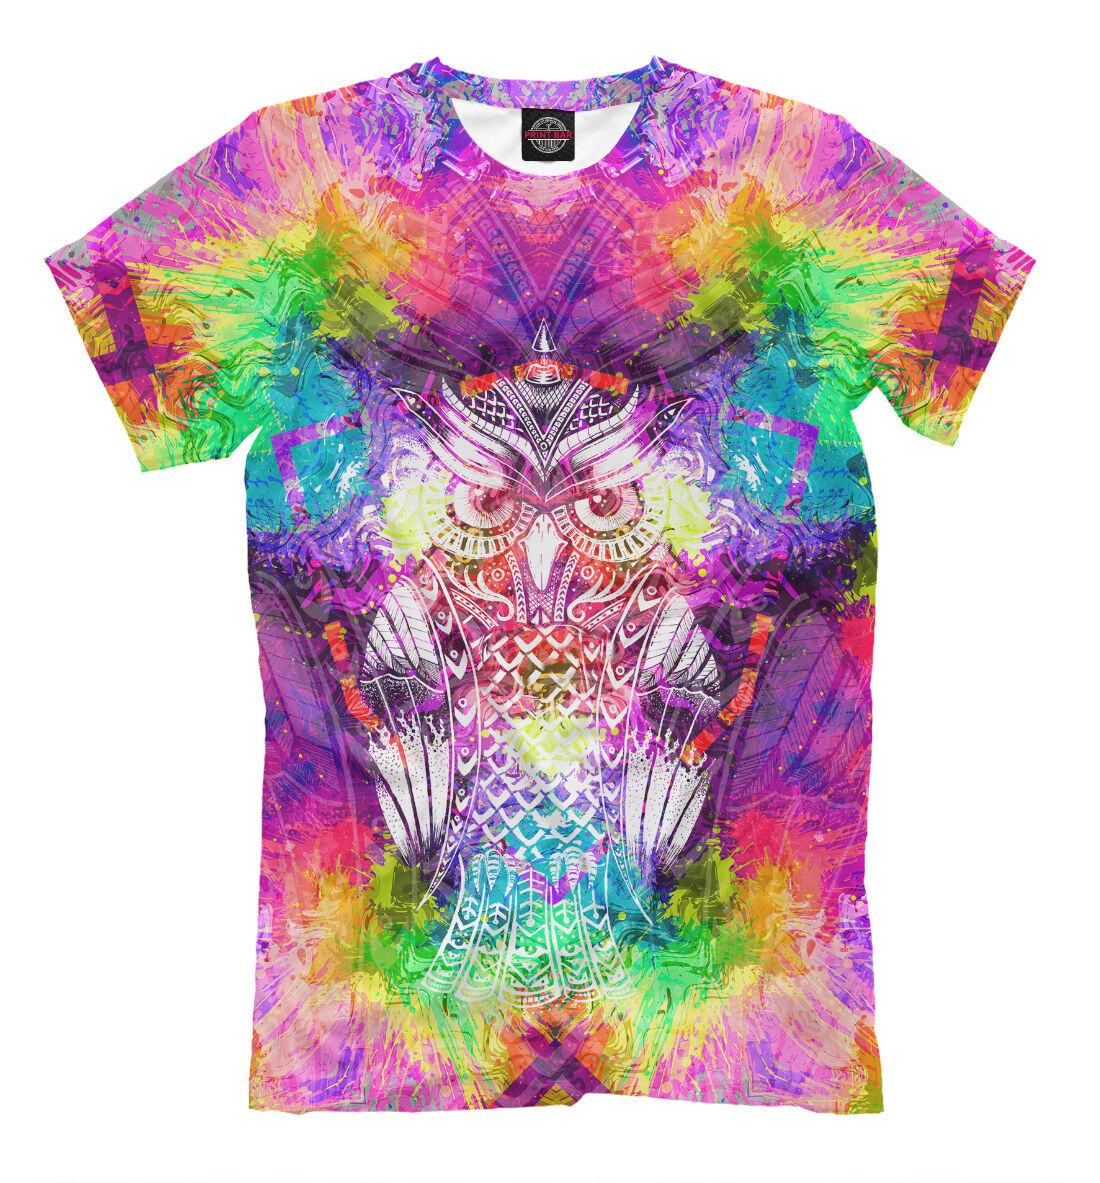 Glorious mandala t-shirt Psy geometry pattern edm rave lsd multicolored tee goa